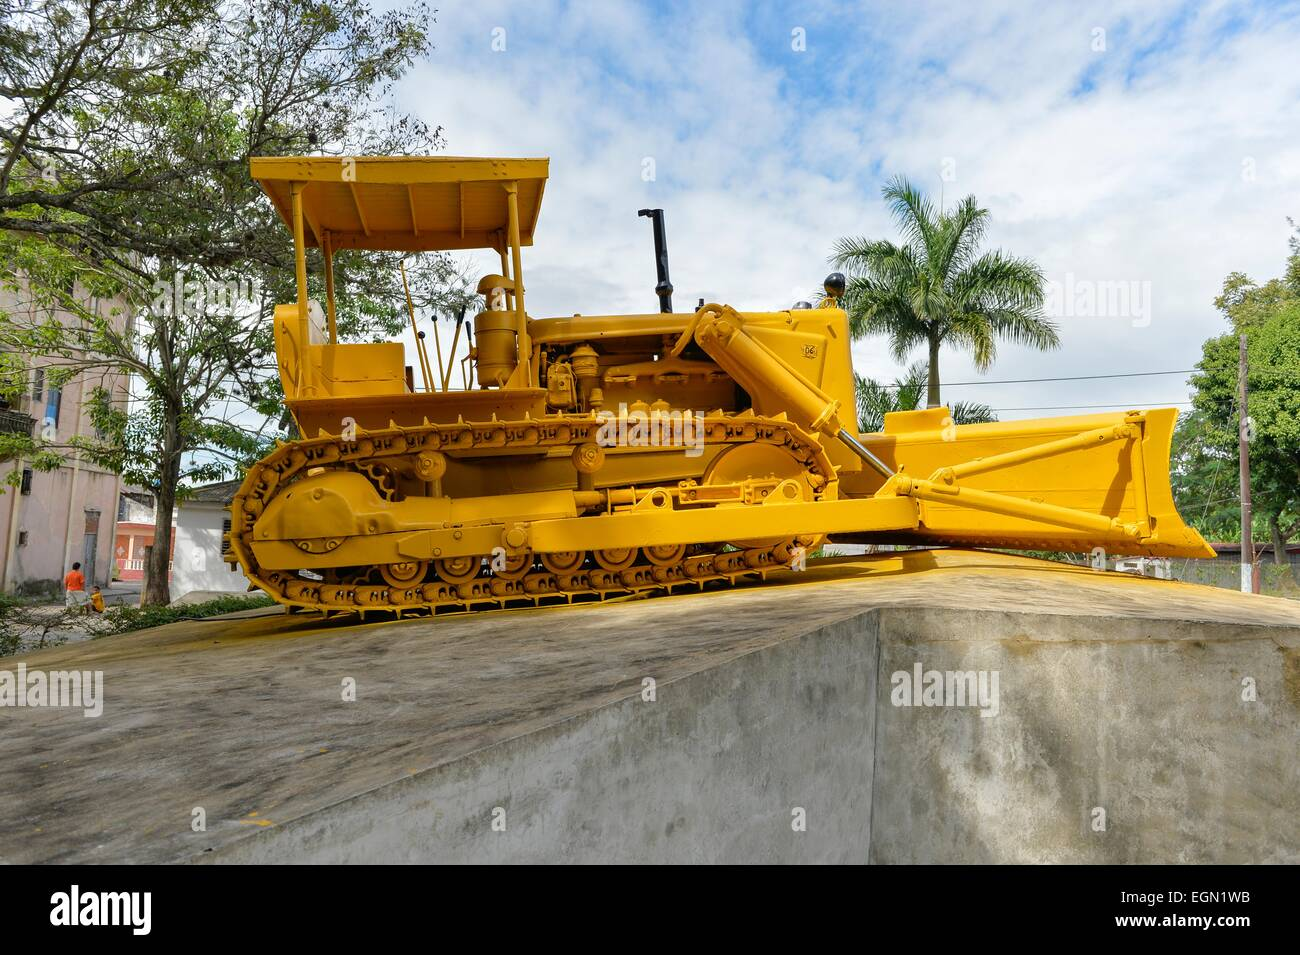 Caterpillar digger from the Cuban Revolution, where the train and carriages were attacked and derailed, Santa Clara, - Stock Image